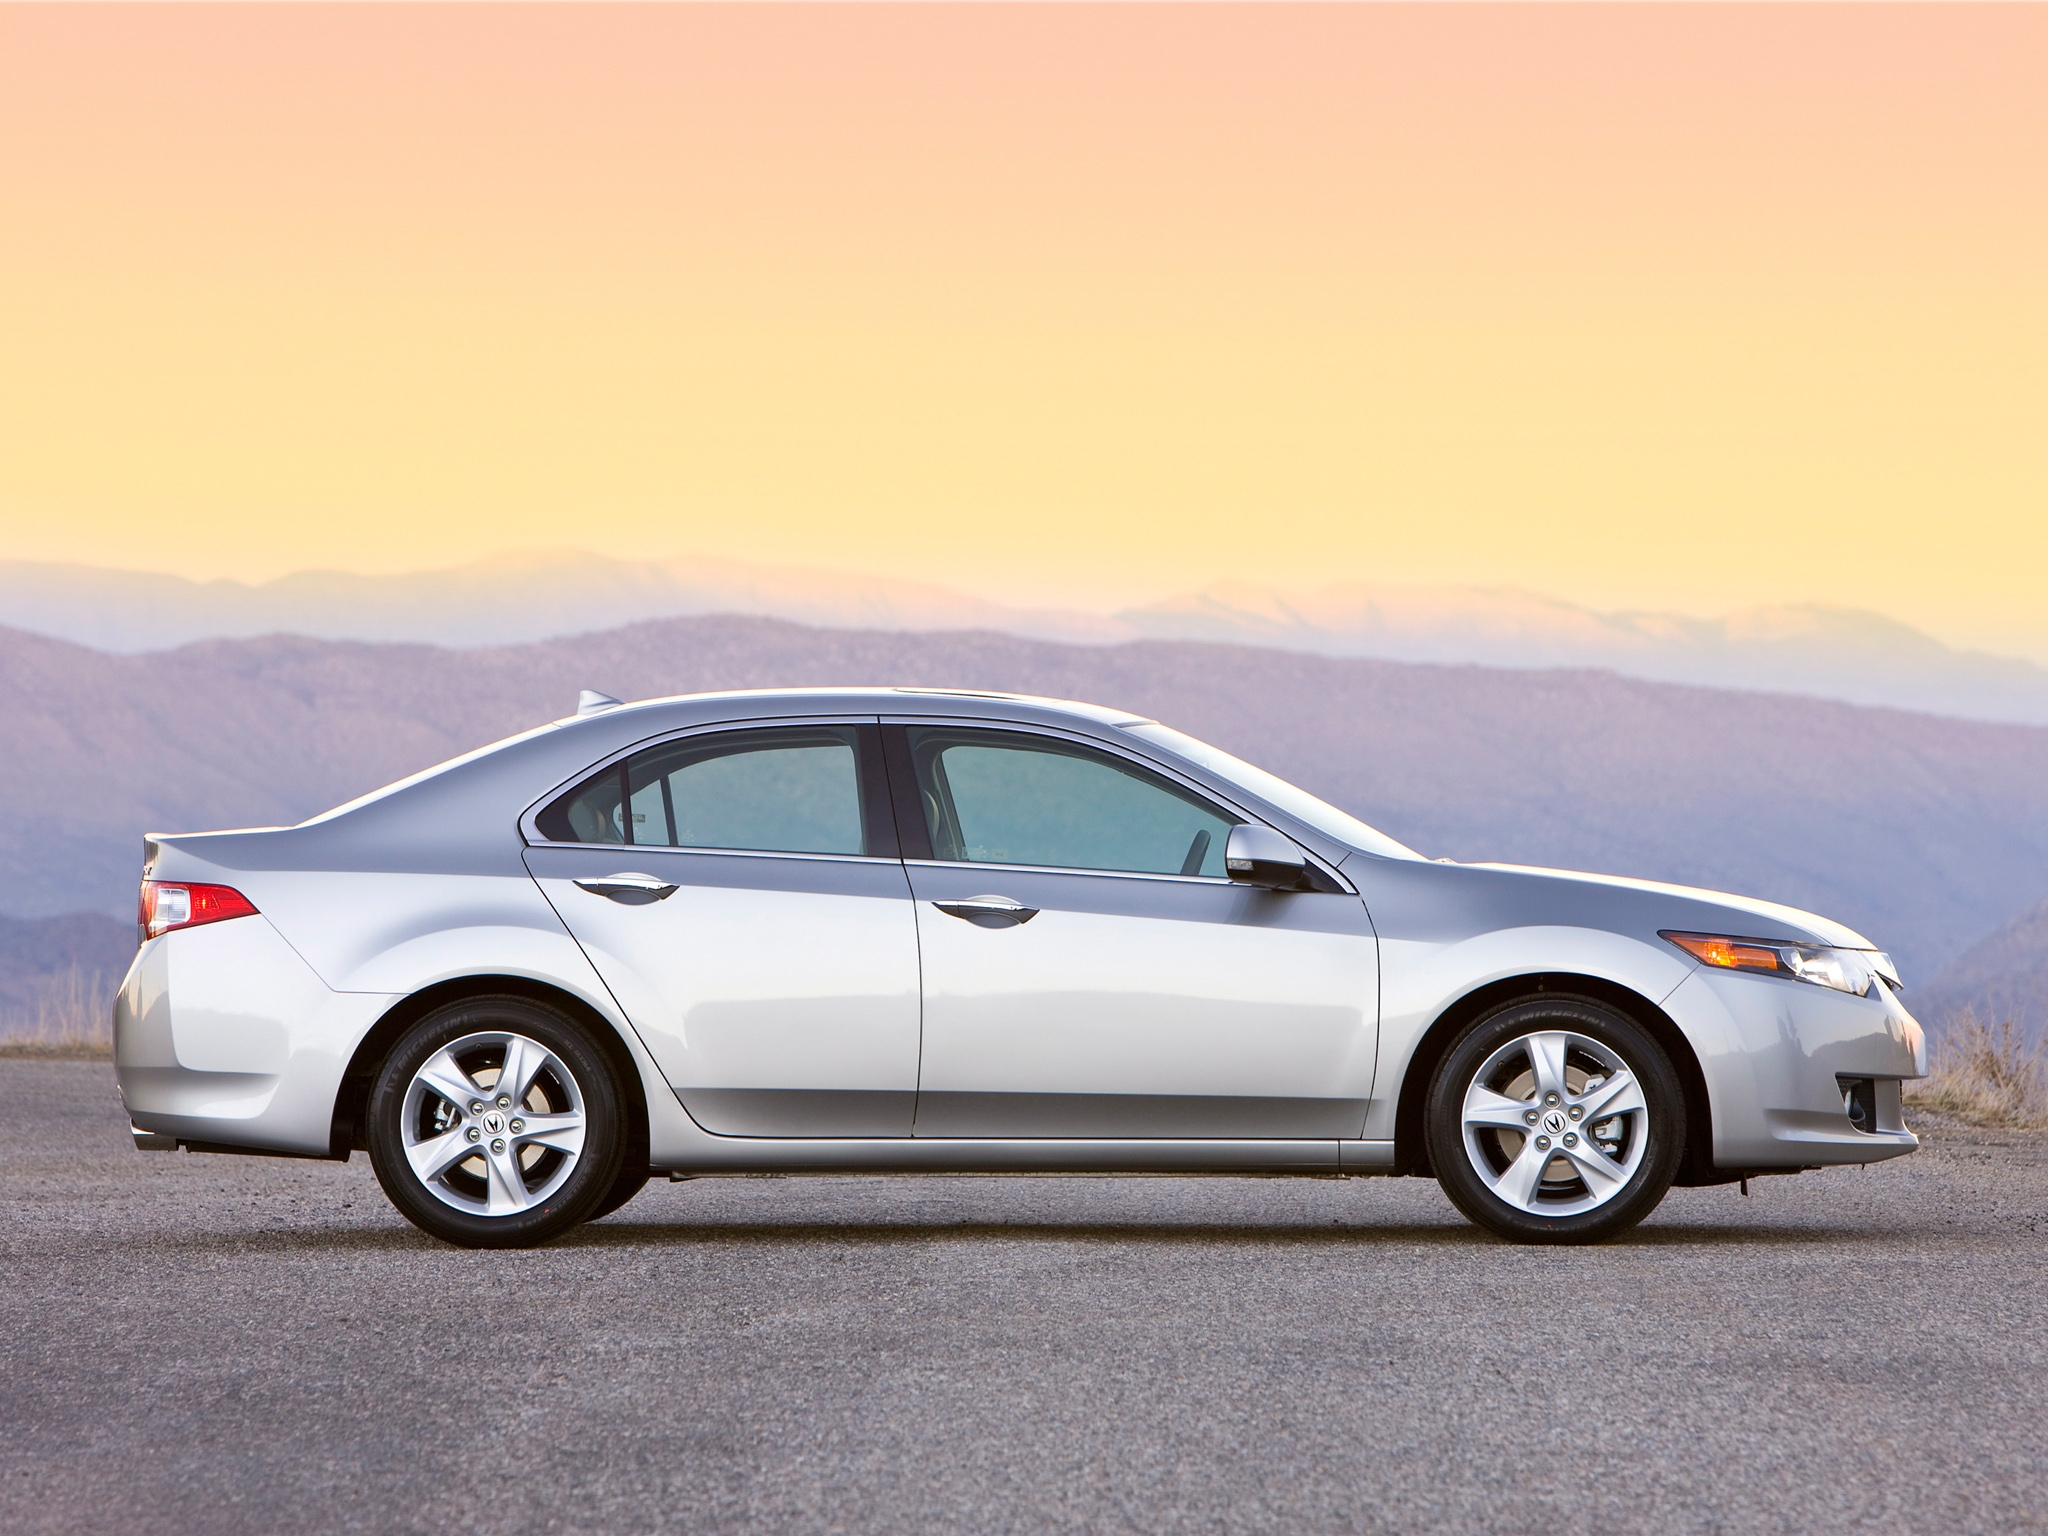 107014 download wallpaper Cars, Acura, Akura, 2008, Silver Metallic, Side View, Style, Auto, Tsx, Sunset, Asphalt, Mountains screensavers and pictures for free